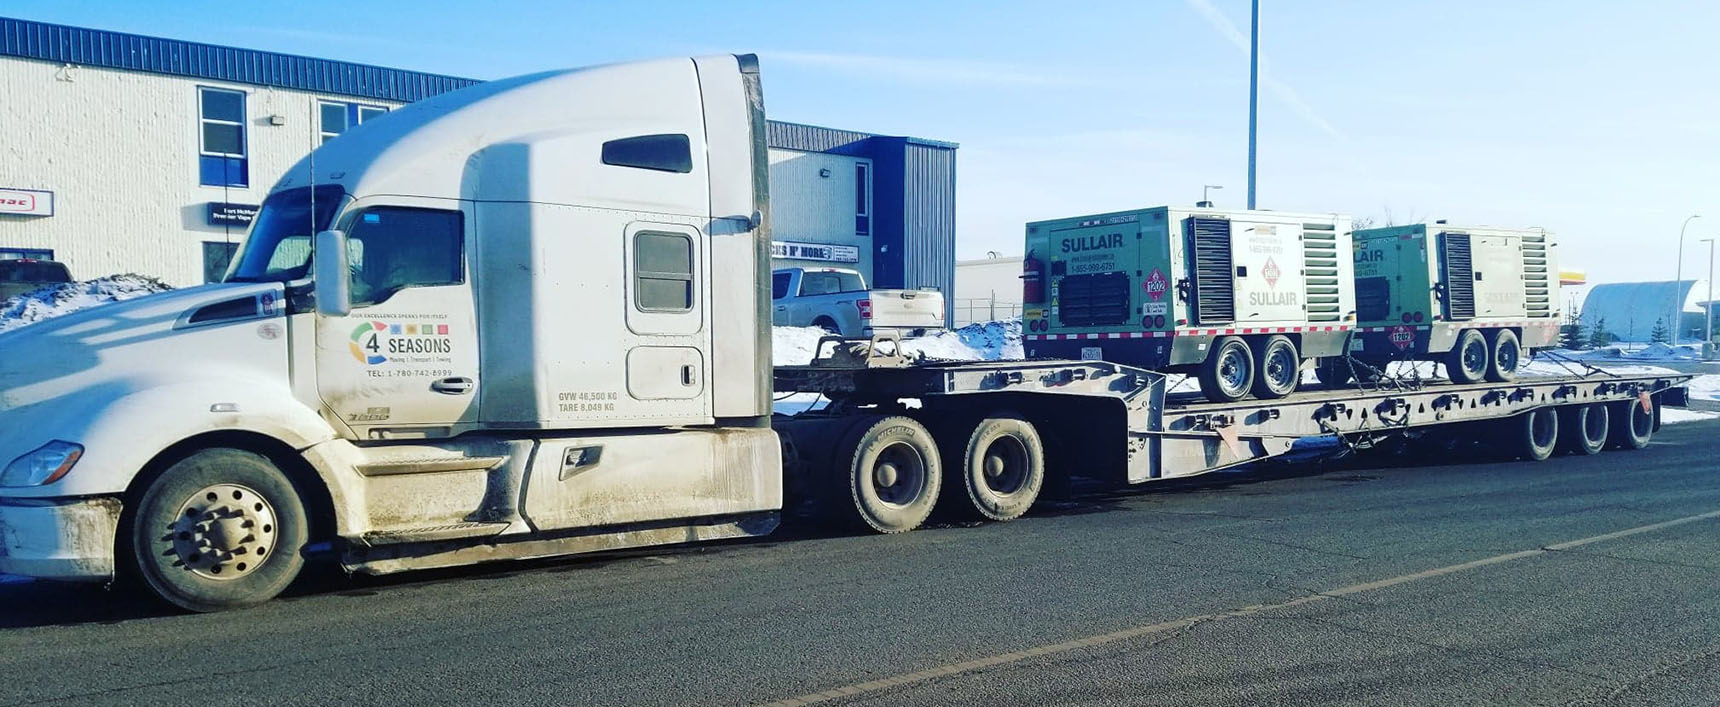 Transport Heavy Equipment Alberta - 4 Seasons Transport & Towing